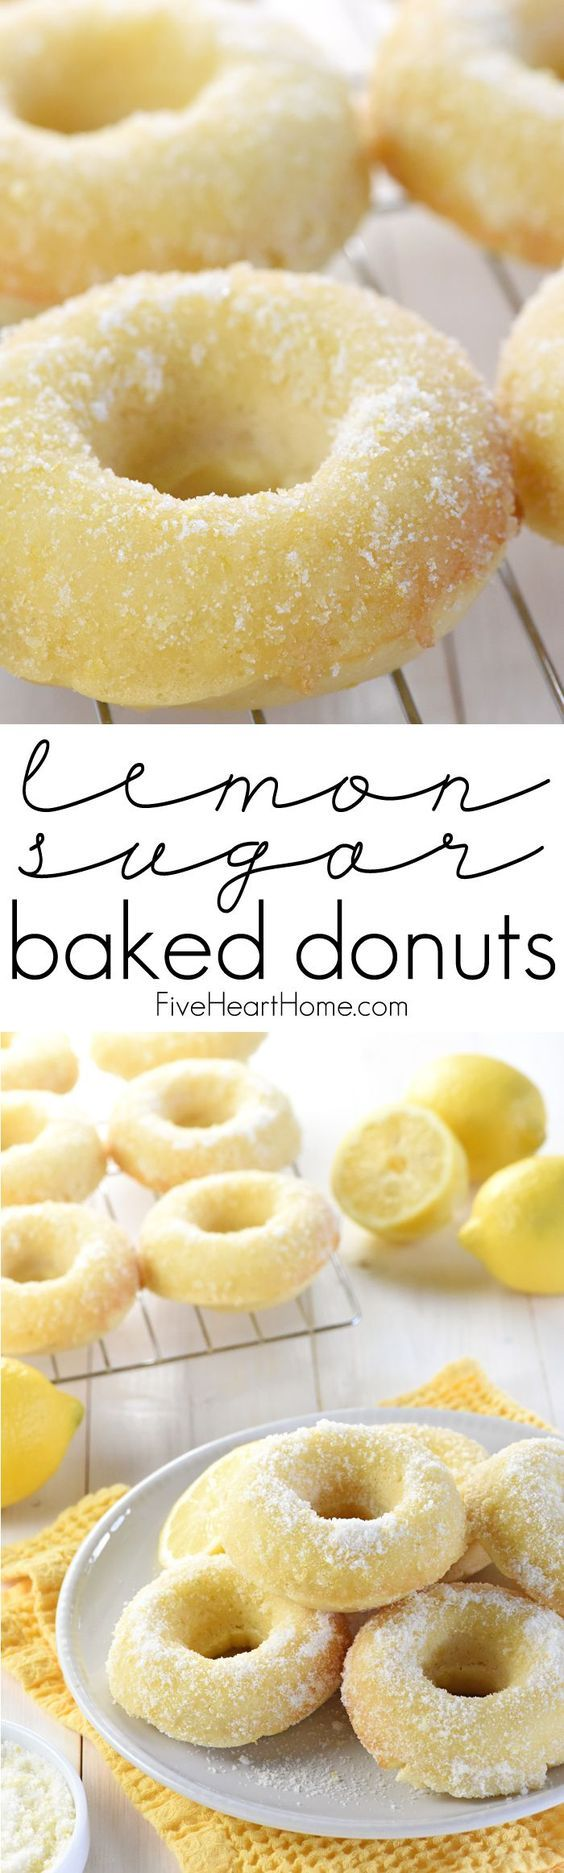 Lemon Sugar Baked Donuts ~ light citrusy and generously coated in a crunchy lemon-zest infused sugar...the perfect sunny treat for breakfast or dessert! |Lemon Sugar Baked Donuts ~ light citrusy and generously coated in a crunchy lemon-zest infused sugar...the perfect sunny treat for breakfast or dessert! |FiveHeartHome